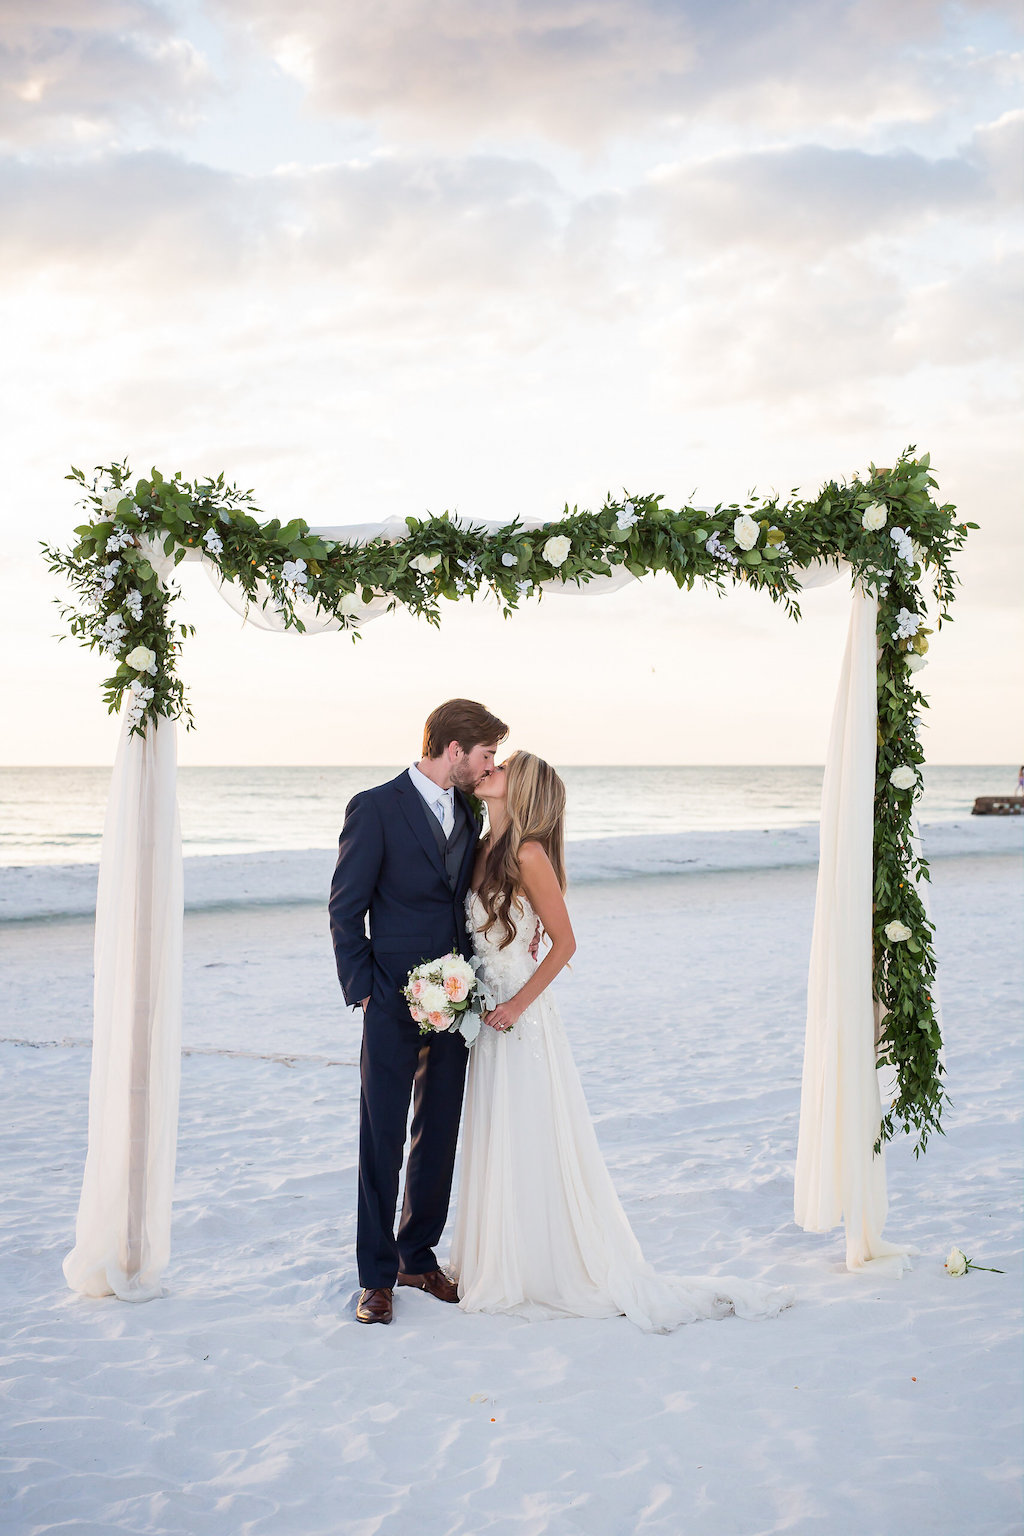 Bride and Groom Kissing Under White Draped Arch Accented with Greenery and White Flowers   Siesta Key Beach Wedding   Sarasota Wedding Photographer Cat Pennenga Photography